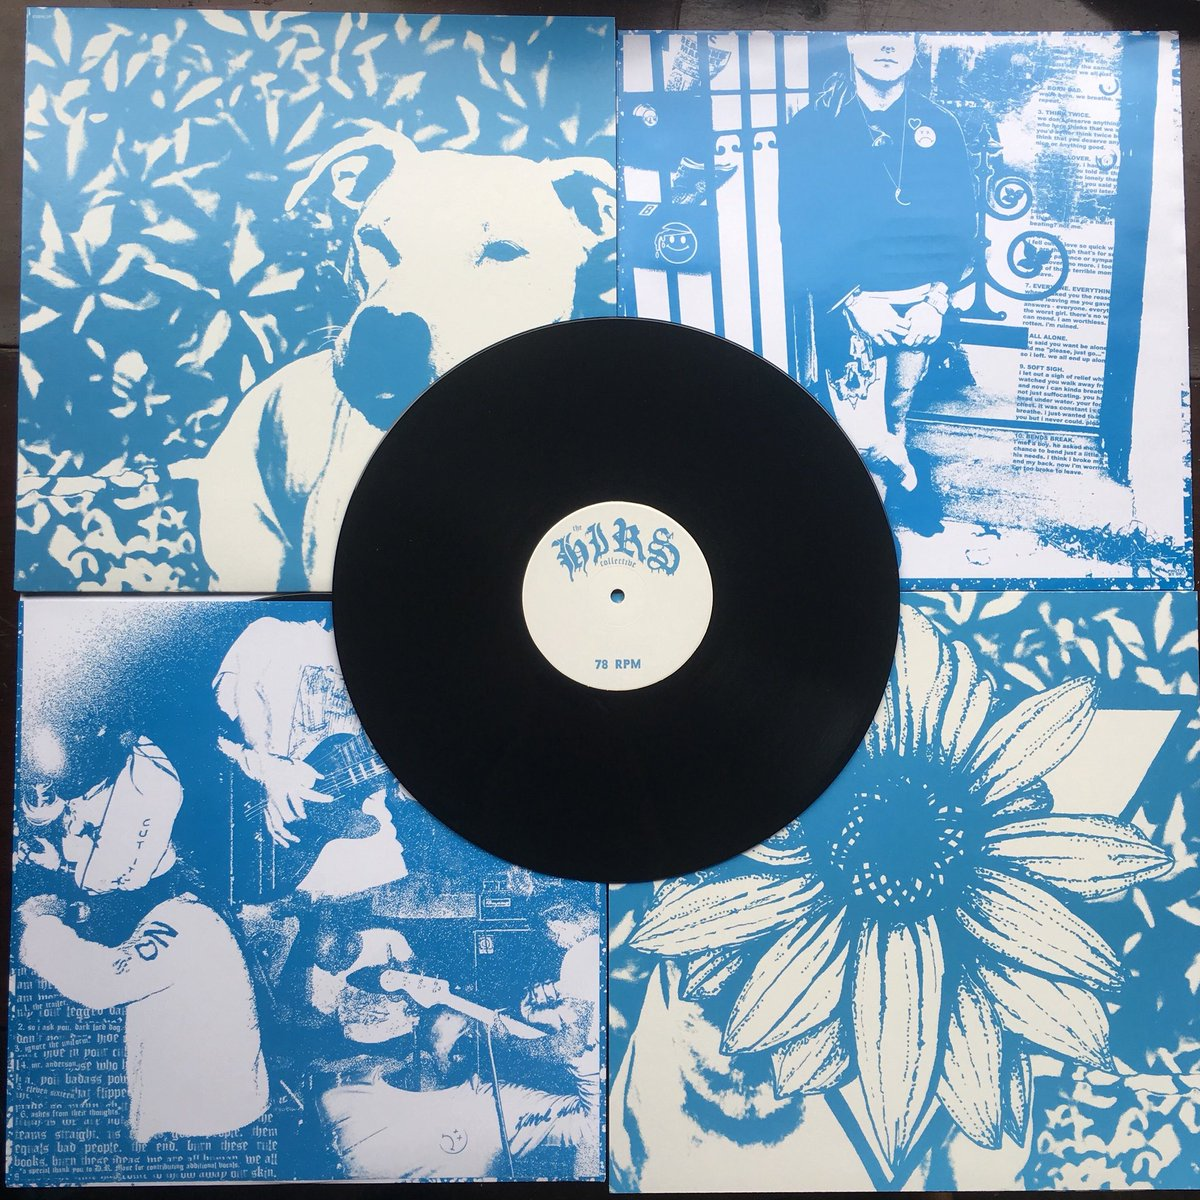 Jenna Pup / The HIRS Collective split LP